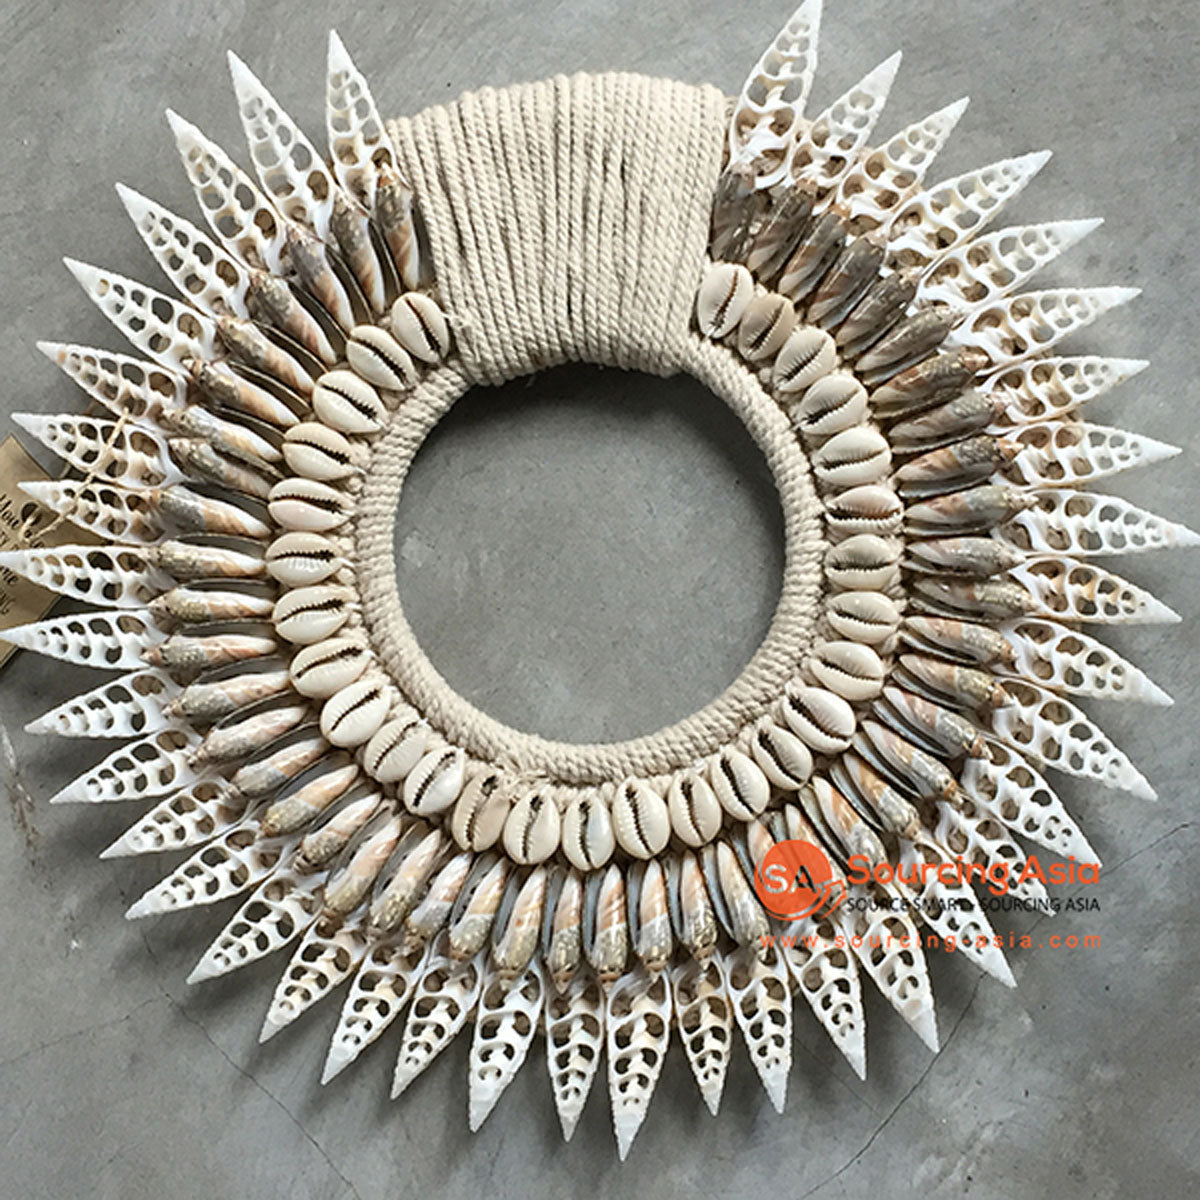 SHL068-5 WHITE AND GREY SHELL ROUND HANGING WALL DECORATION